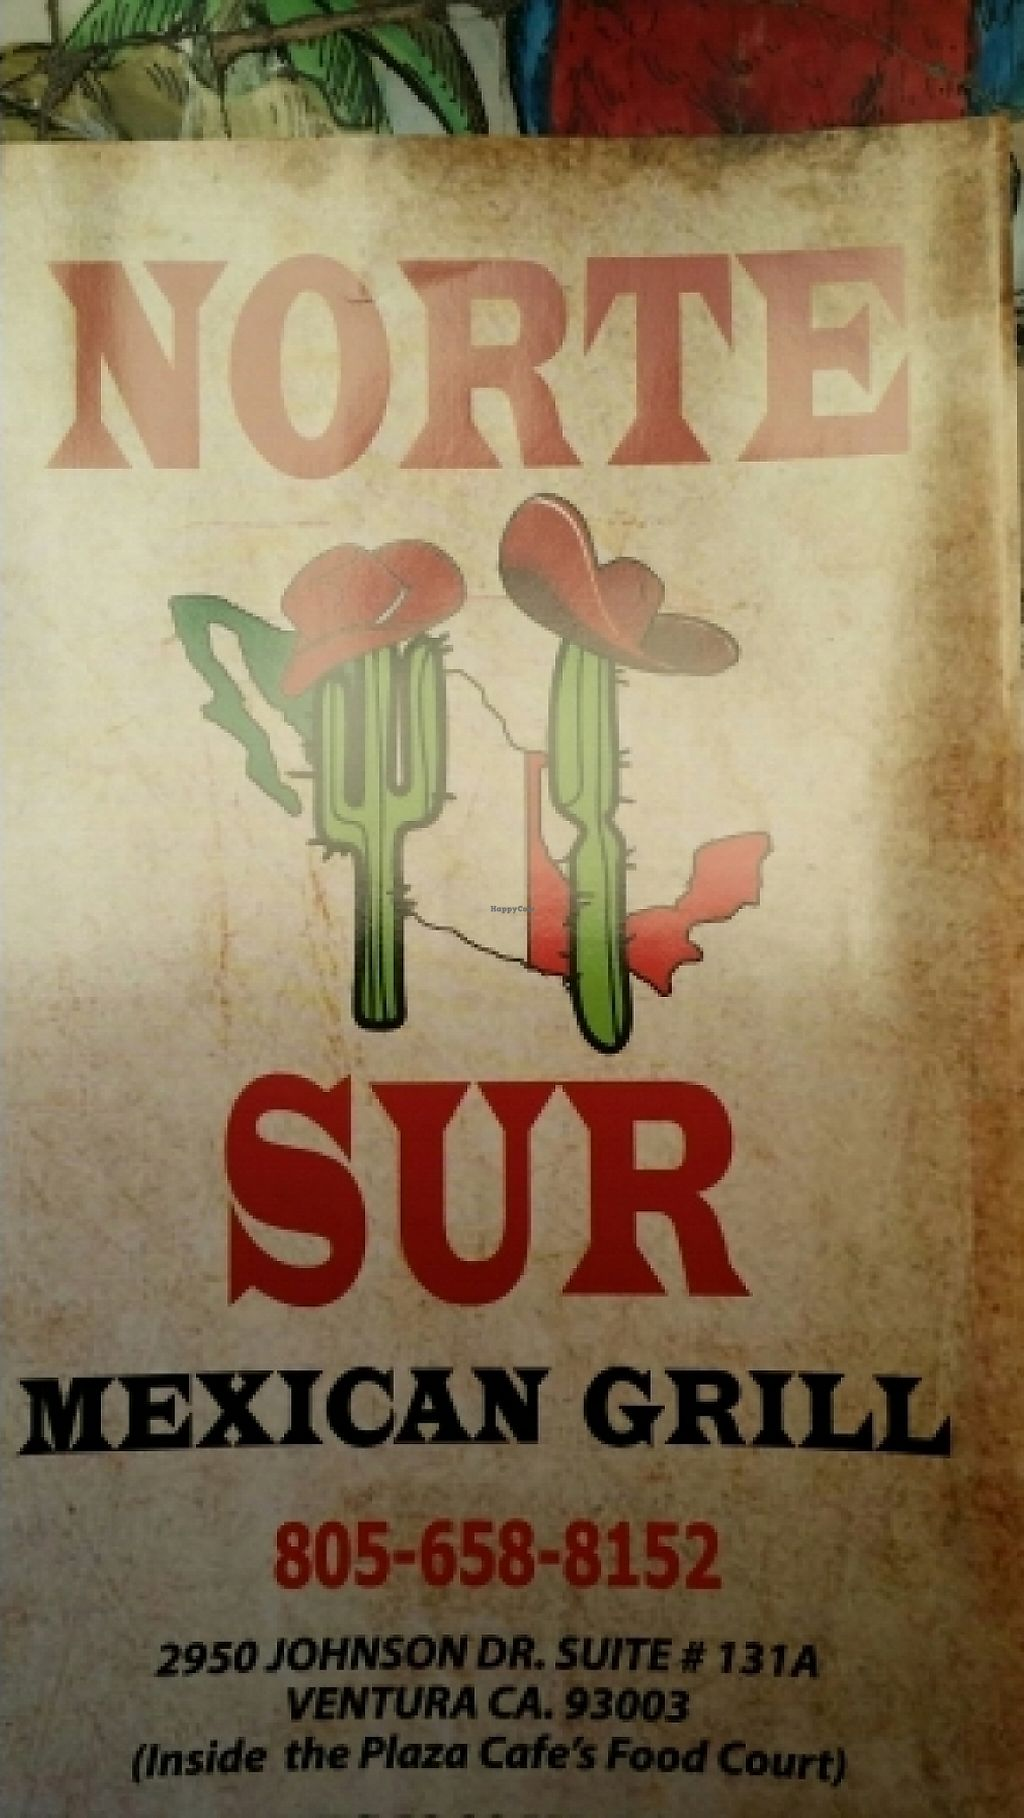 """Photo of Norte Sur  by <a href=""""/members/profile/catbone"""">catbone</a> <br/>Clever Cactus Fork & Knife  <br/> January 20, 2016  - <a href='/contact/abuse/image/53445/188966'>Report</a>"""